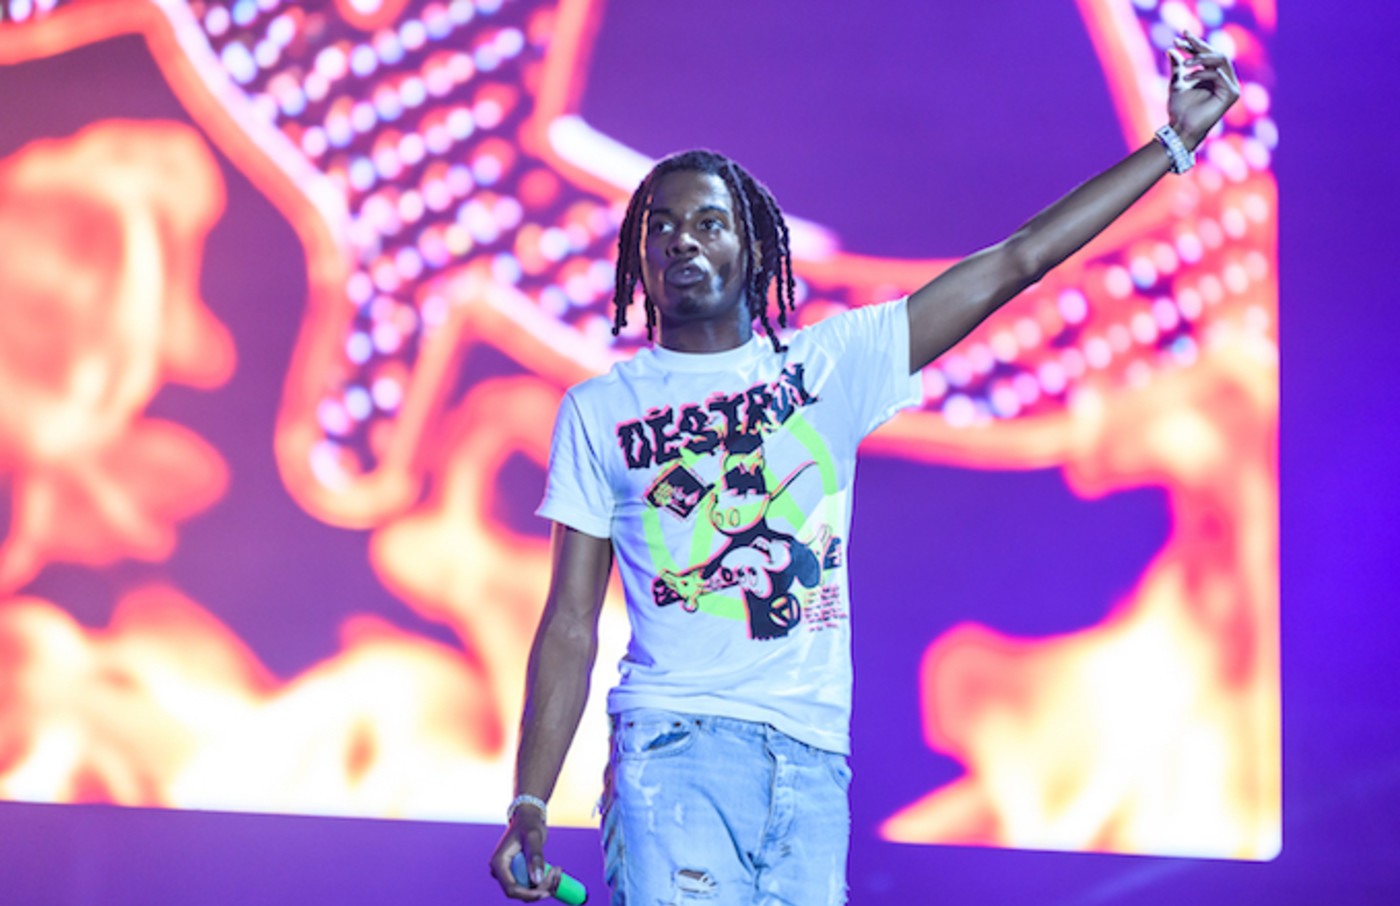 Playboi Cartii performs during day three of Rolling Loud.